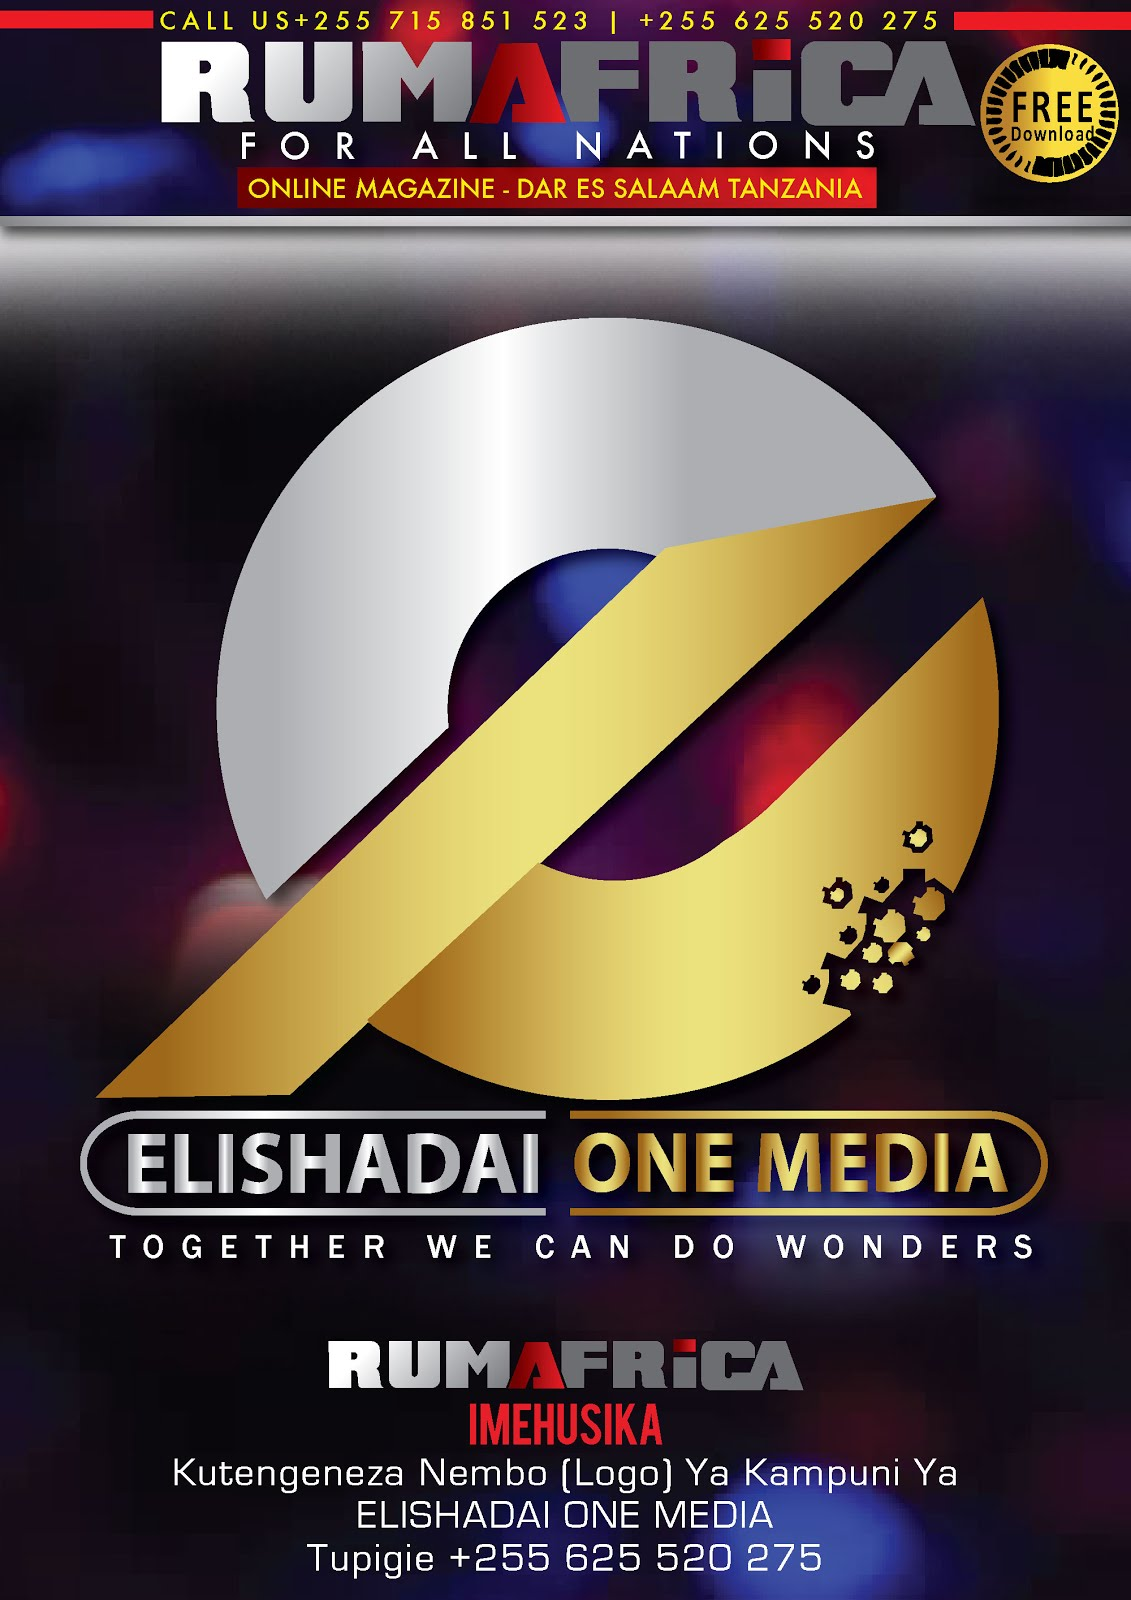 ELISHADAI ONE MEDIA